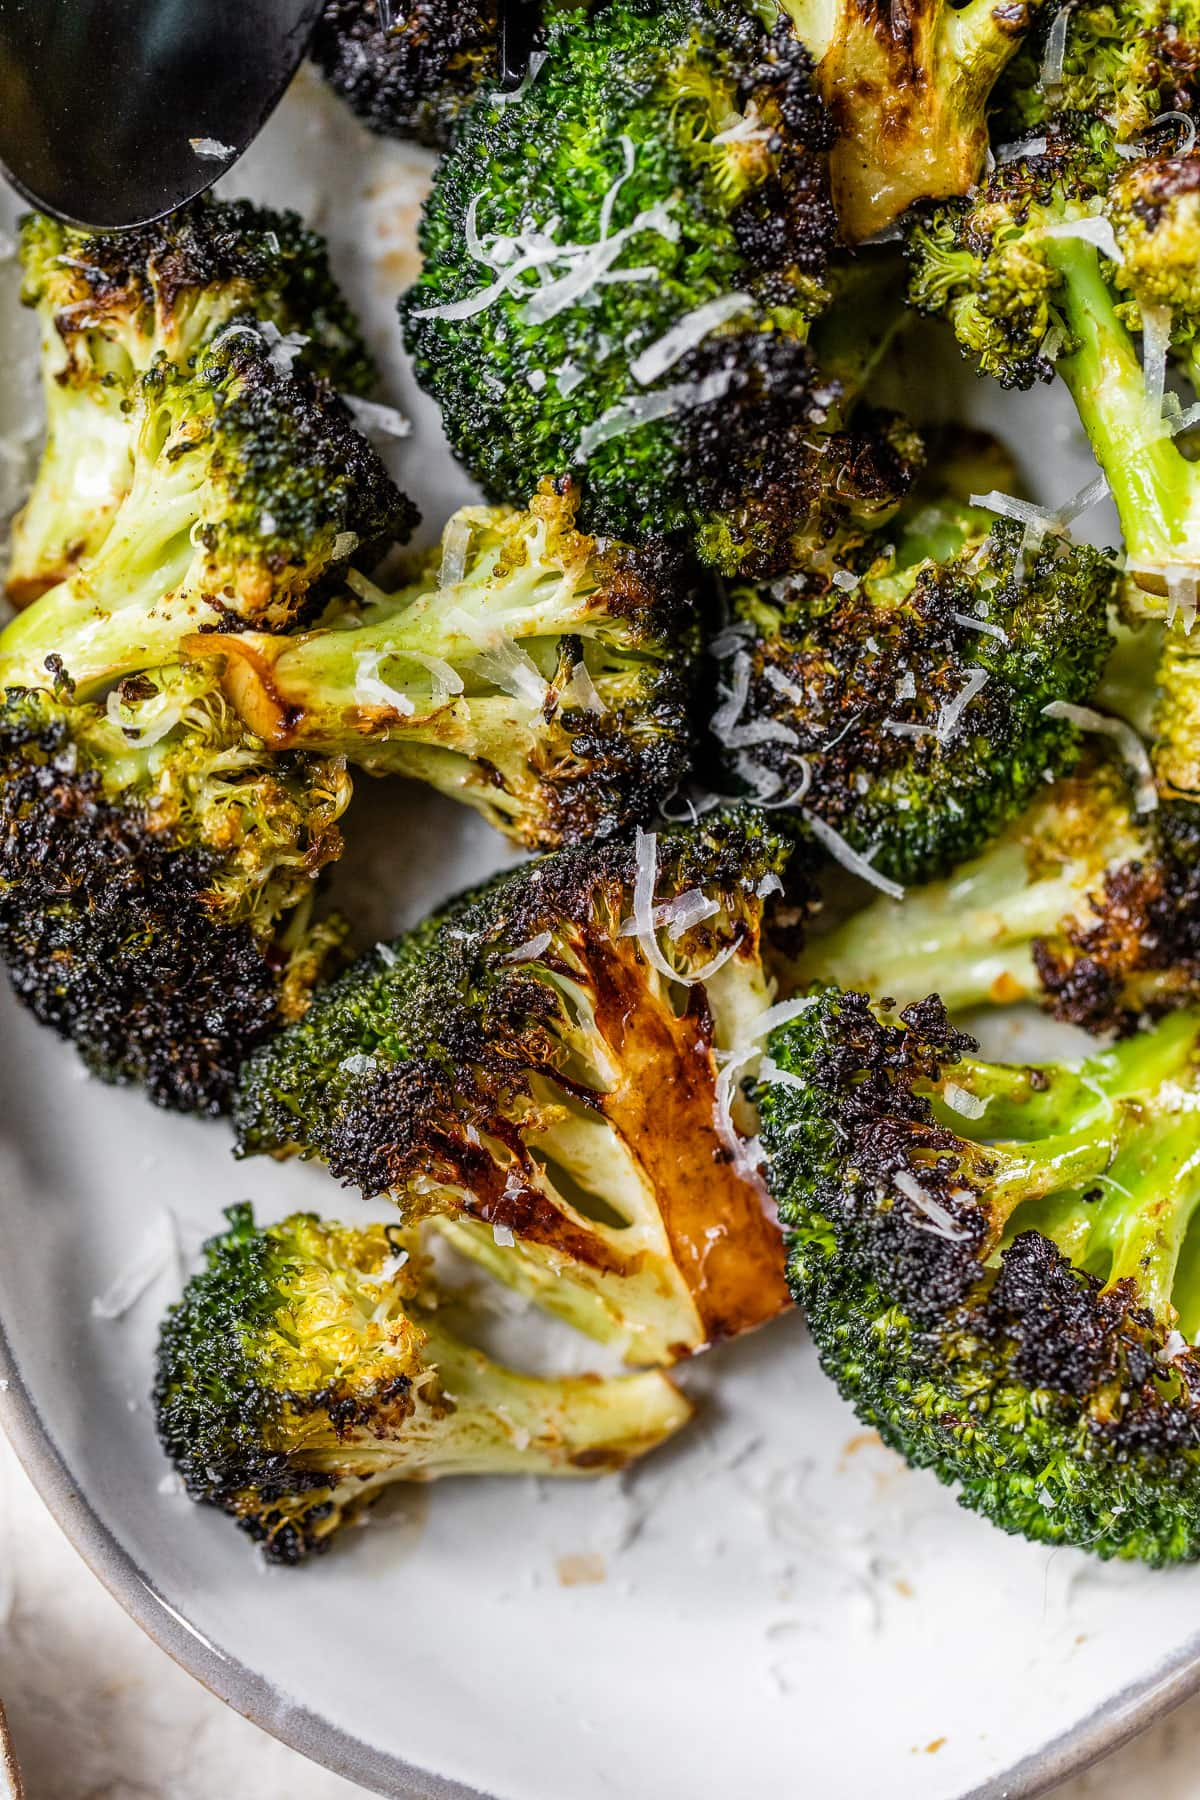 grilled broccoli with Parmesan on a plate